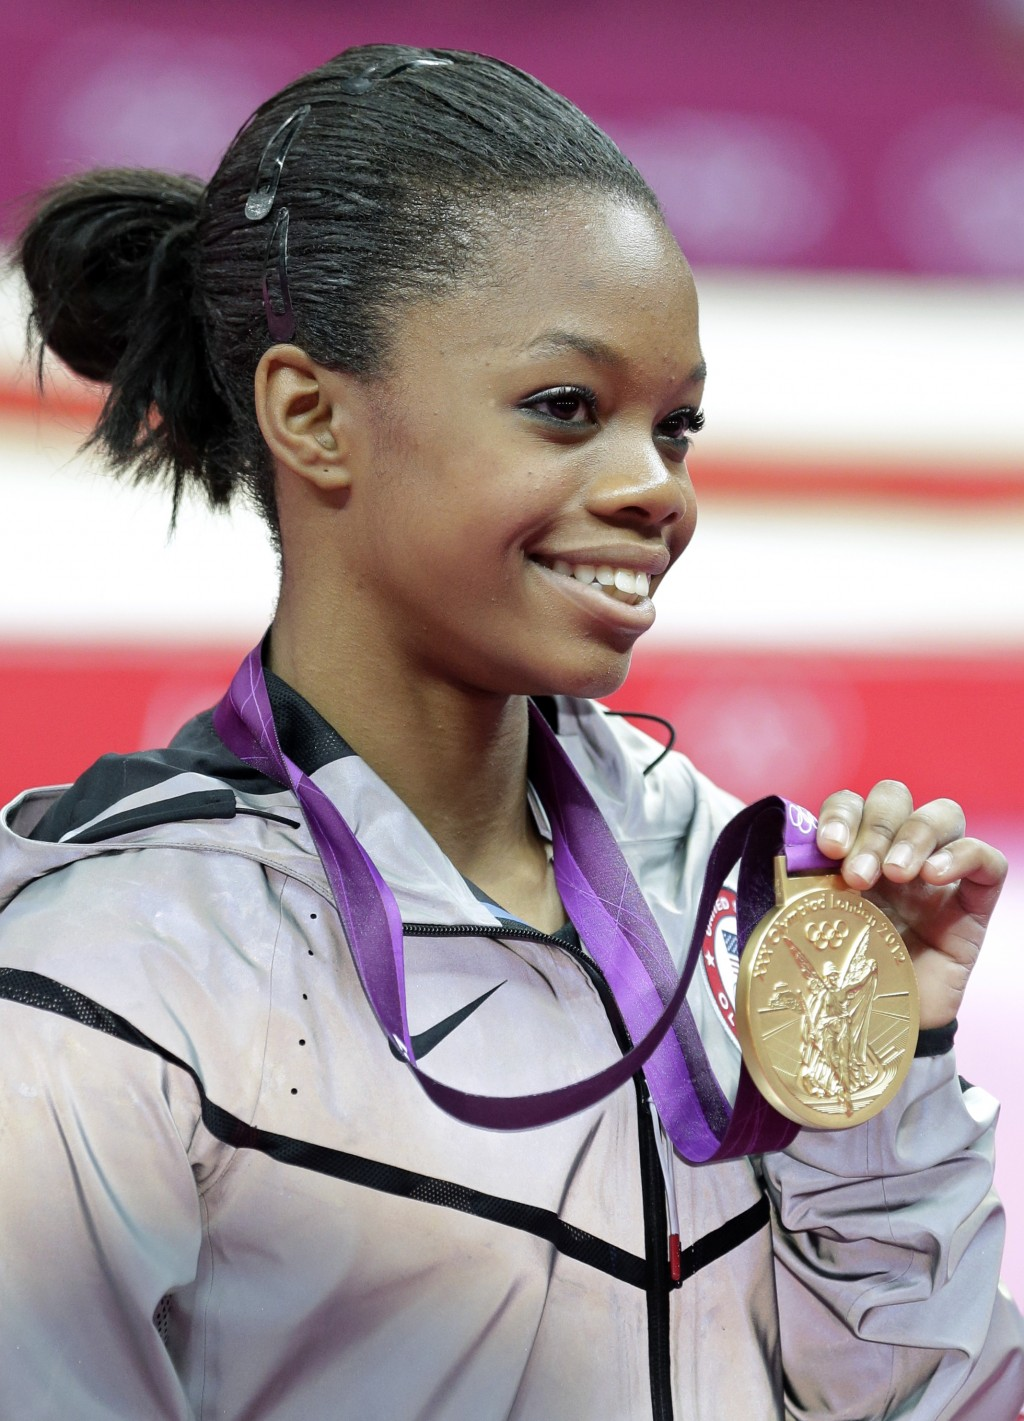 FILE - This Aug. 2, 2012 file photo shows U.S. gymnast Gabrielle Douglas displaying her gold medal during the artistic gymnastics women's individual a...